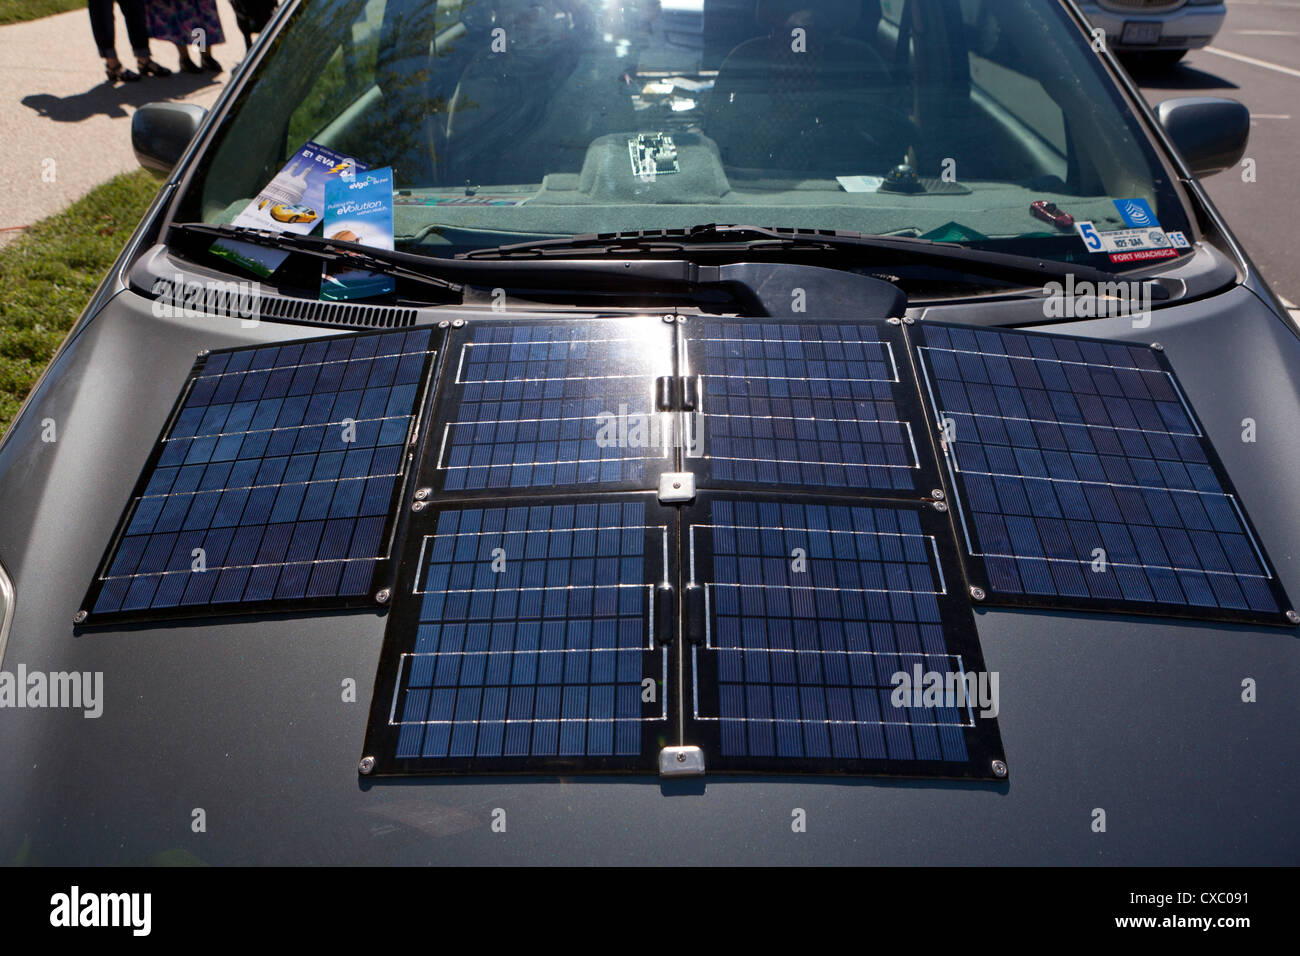 Solar cells installed on electric car hood - Stock Image